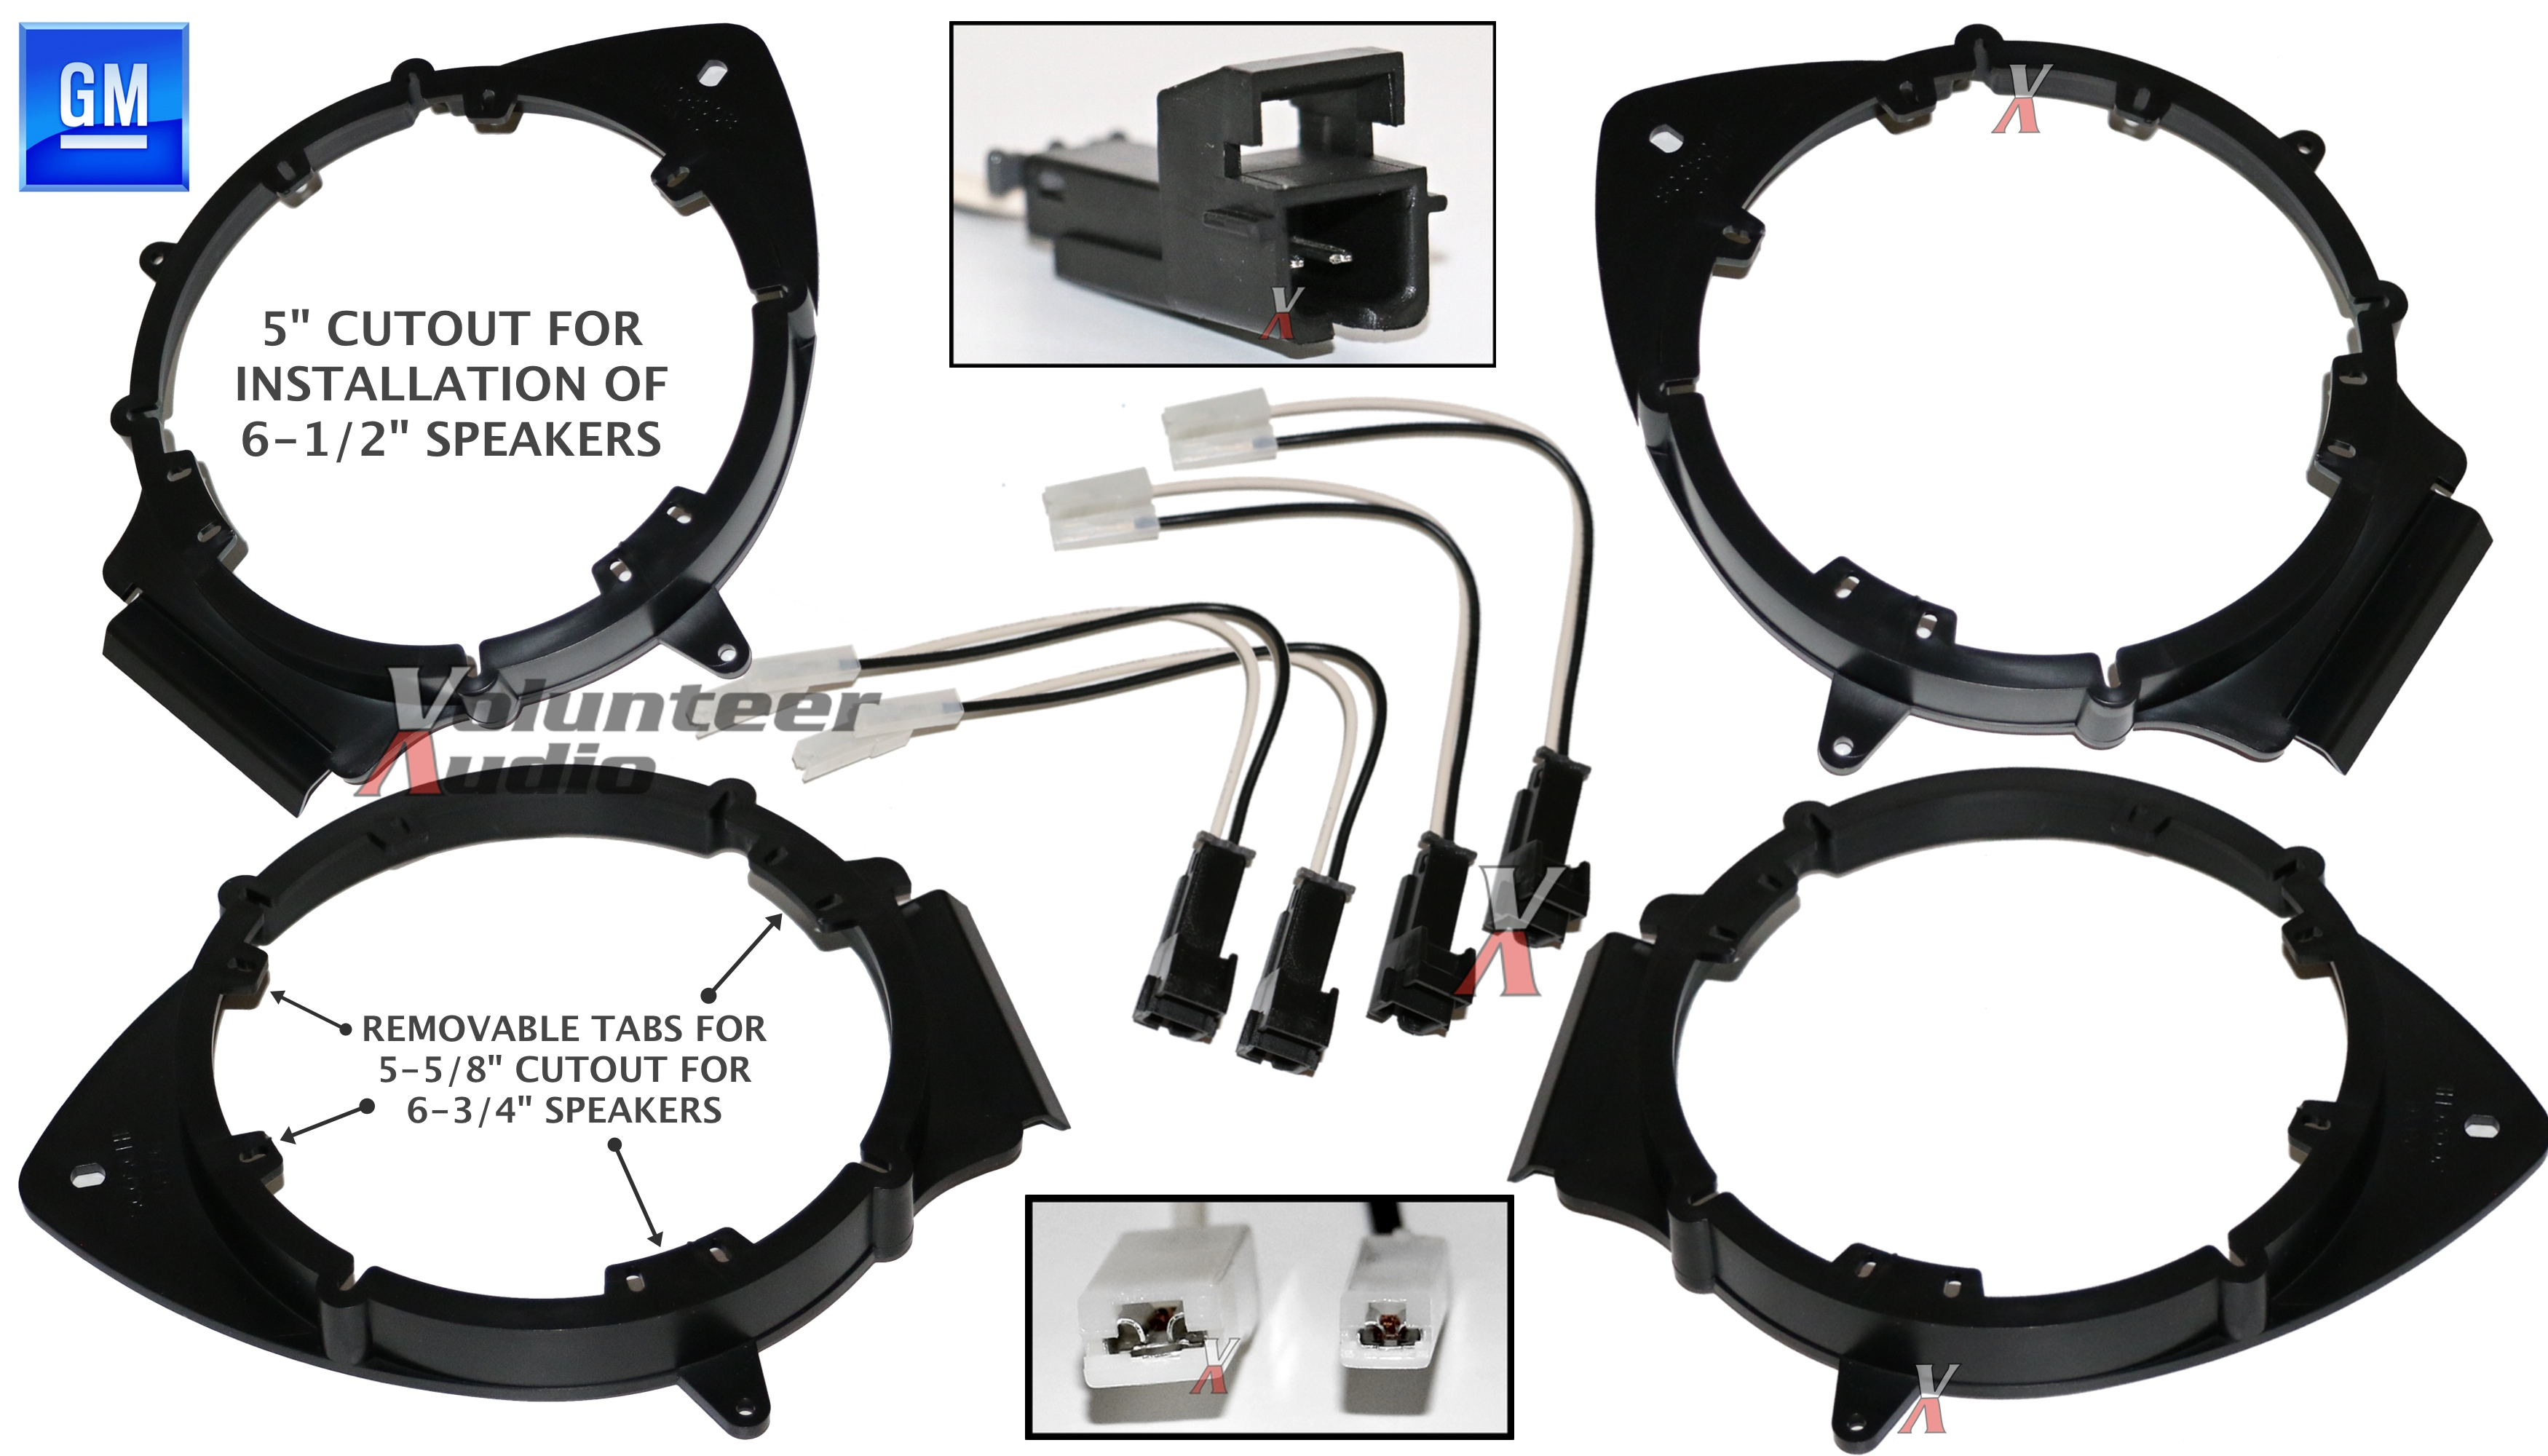 Gm Speaker Wiring Harness Guide And Troubleshooting Of Scosche 2 Pair Bkgmsb356 Shgm03b 6 5 Or 75 Chevrolet Adapters Rh Ebay Com Connectors Radio